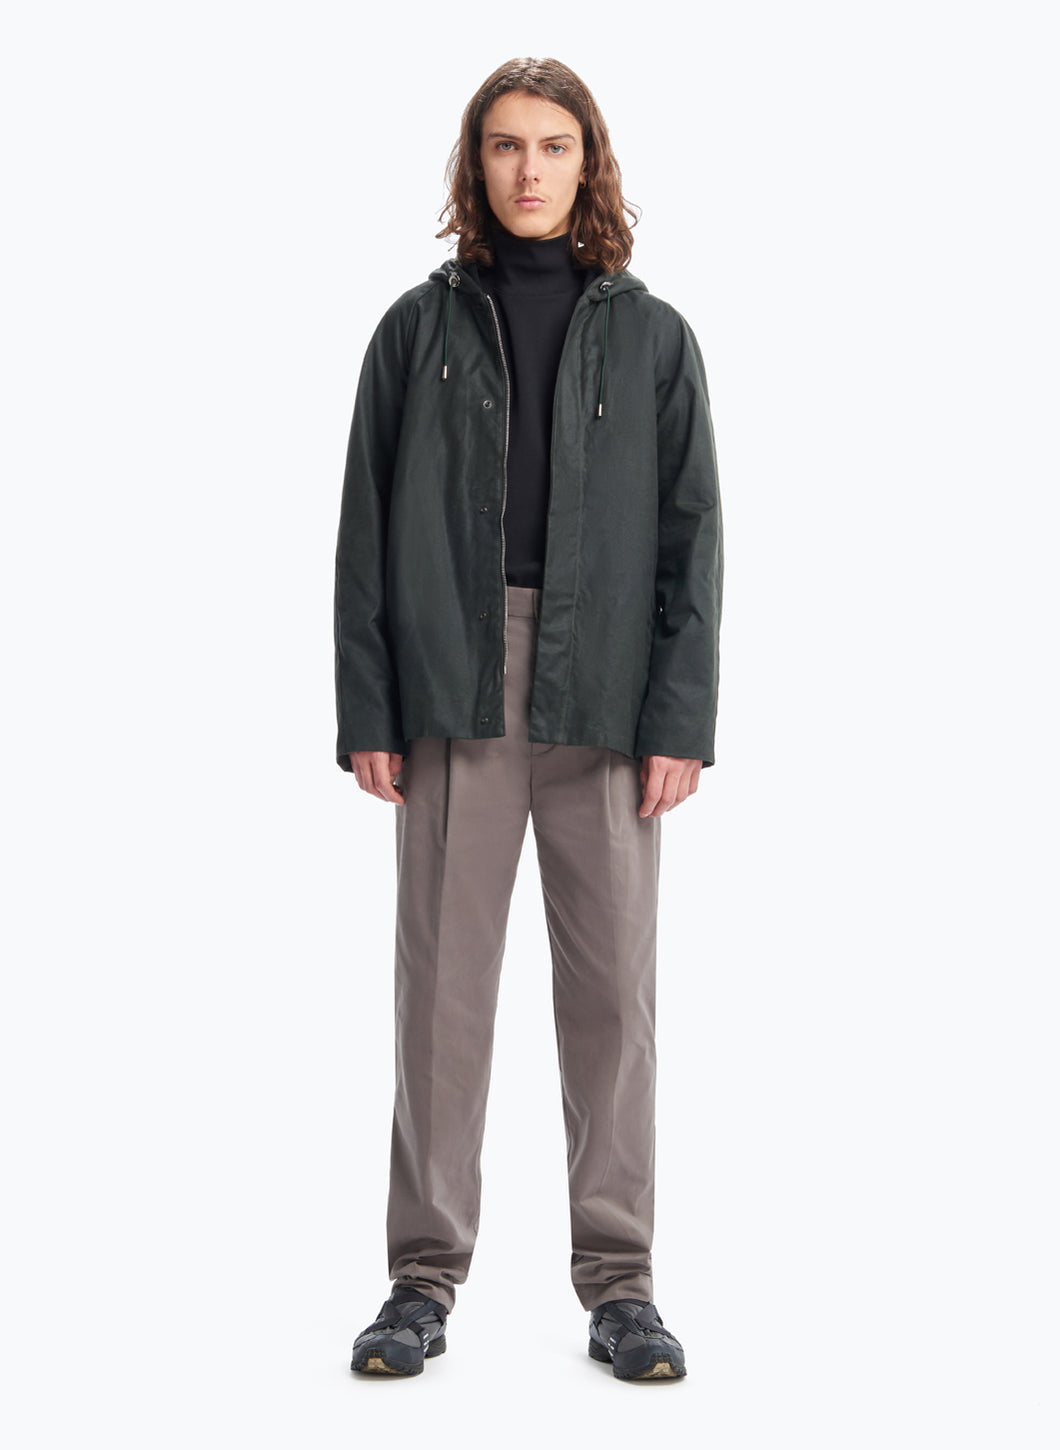 Raglan Sleeve Parka in Dark Green Waxed Cotton Twill